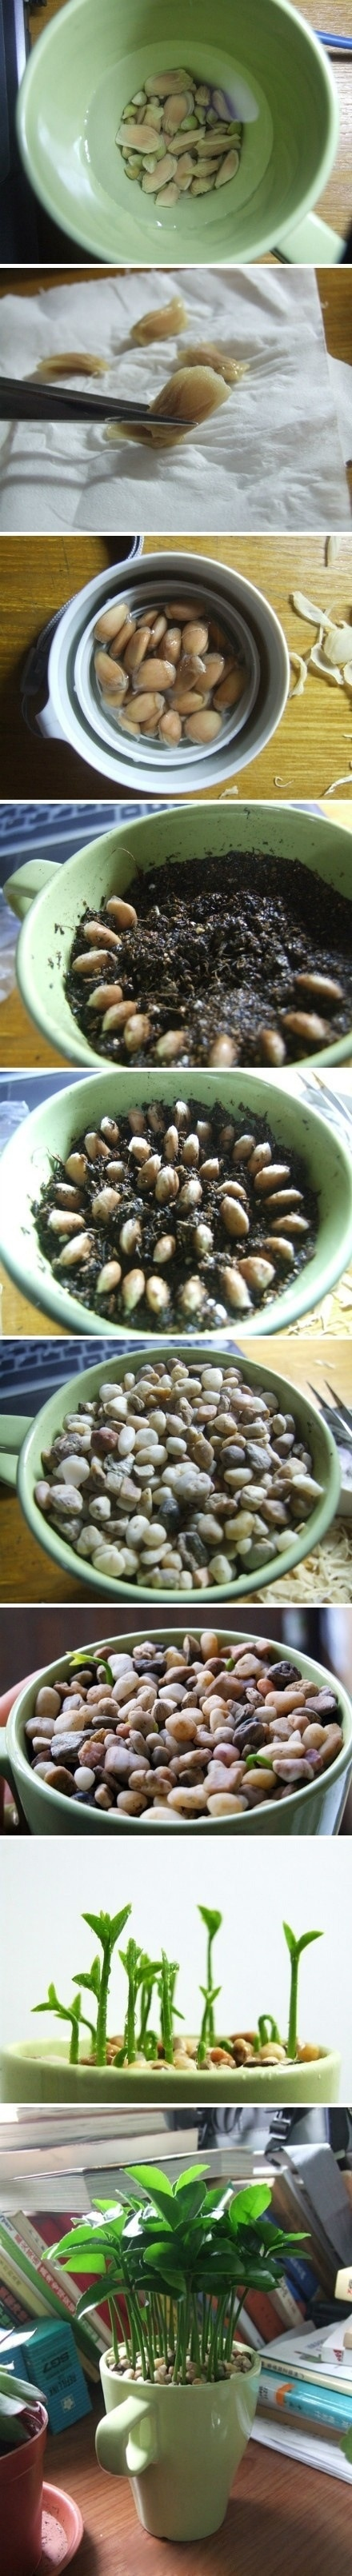 This actually worked! I tried it in a small pot. Put plastic wrap over it to keep it moist. Sprouted in 3-4 weeks. I only had 8 seeds because my lemons didn't have very many so i only have a few sprouts, plant as many seeds as you can.